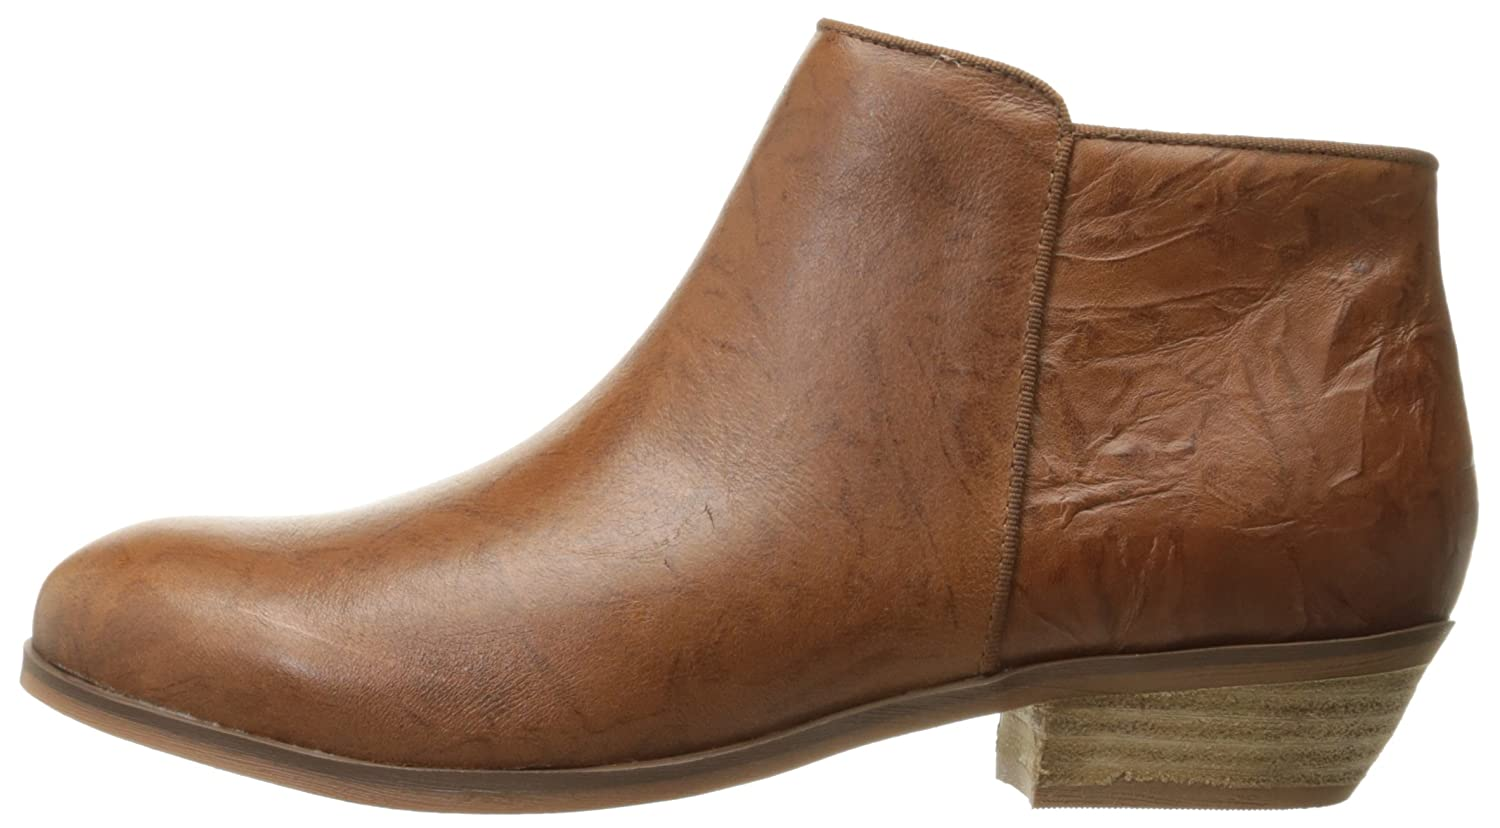 SoftWalk Boot Women's Rocklin Chelsea Boot SoftWalk B019QNKAL0 11 B(M) US|Cognac 9a100d